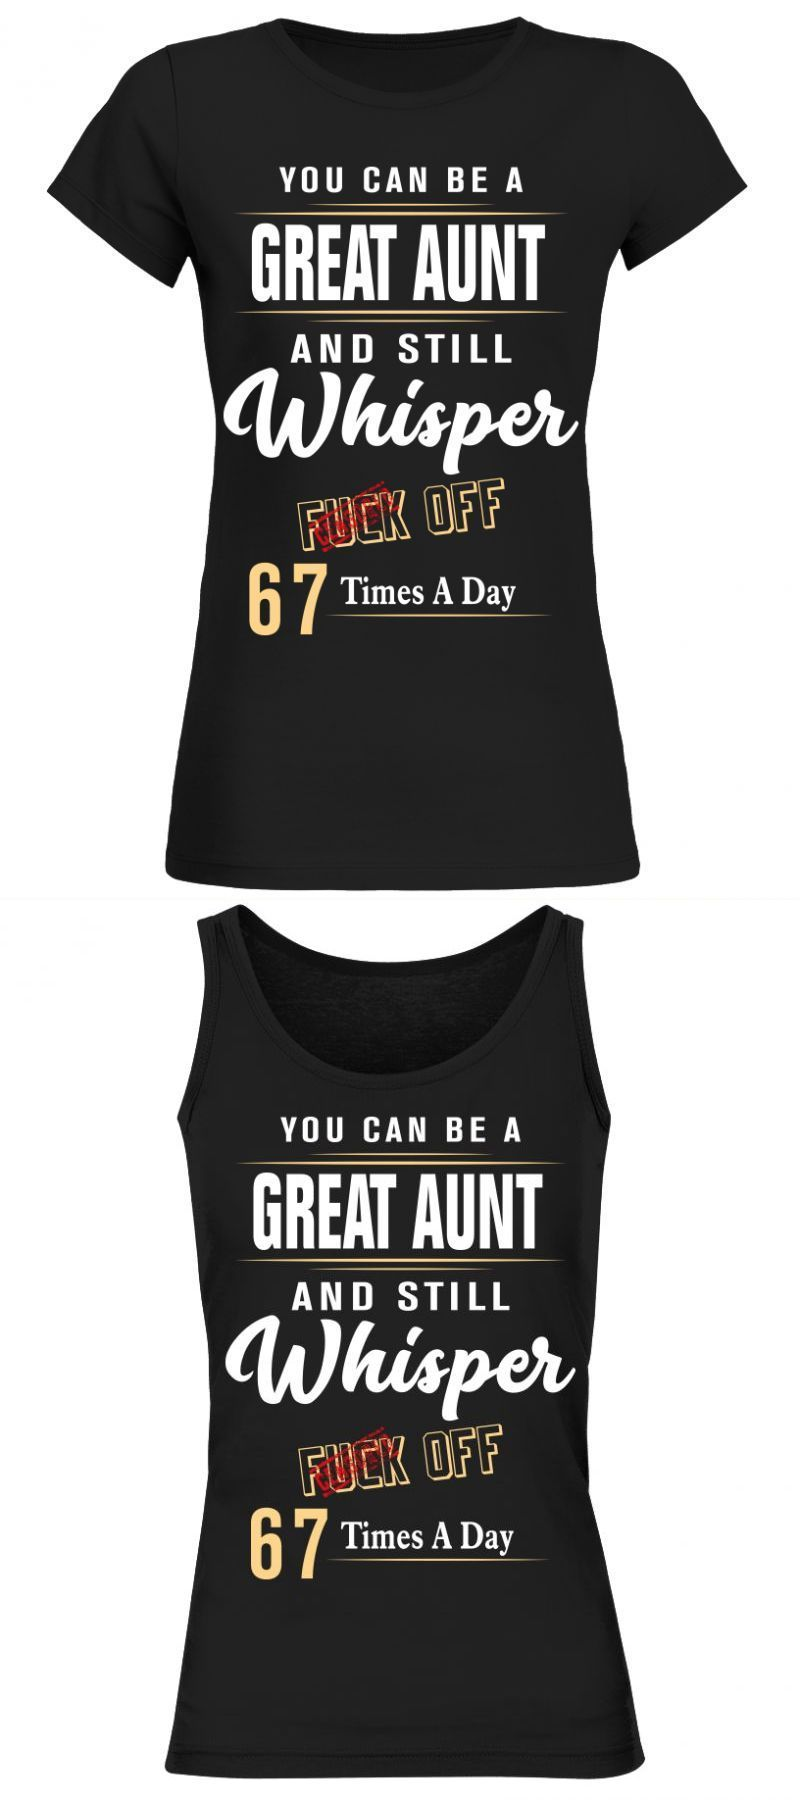 I have a crazy aunt t shirt you can be a great aunt funny